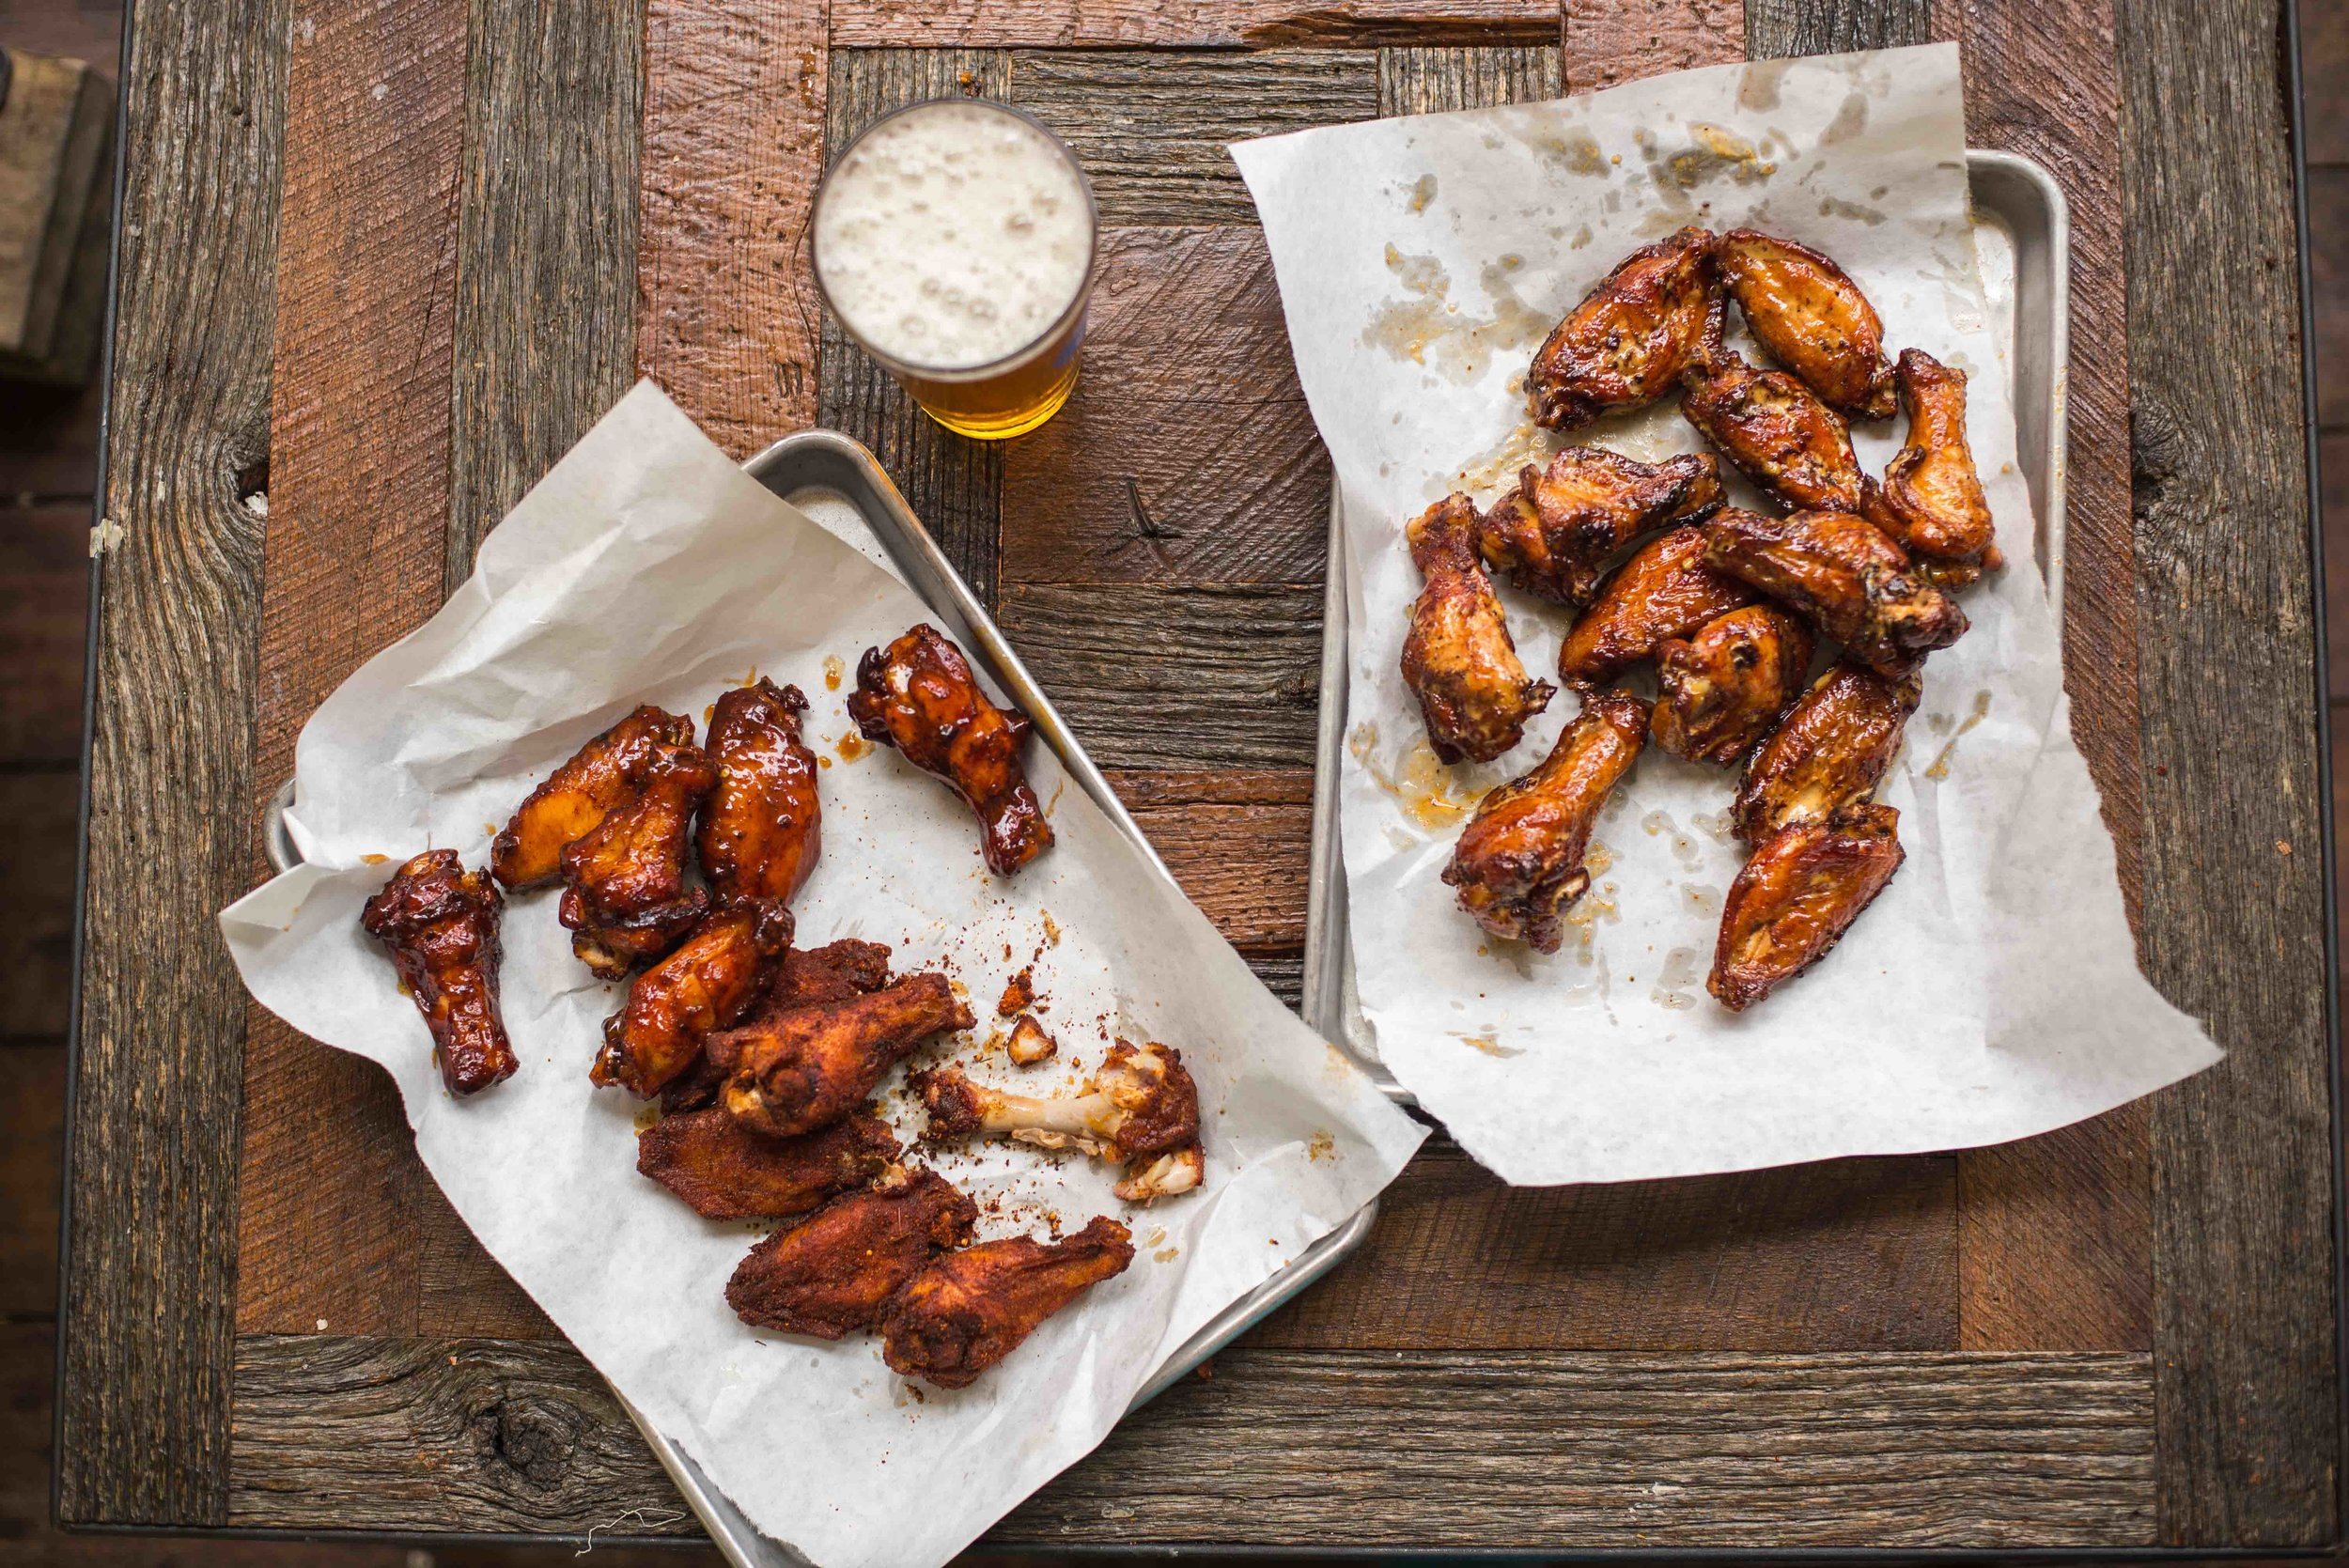 Memphis Dry Rub, Sweet Dixie, and Alabama White wings